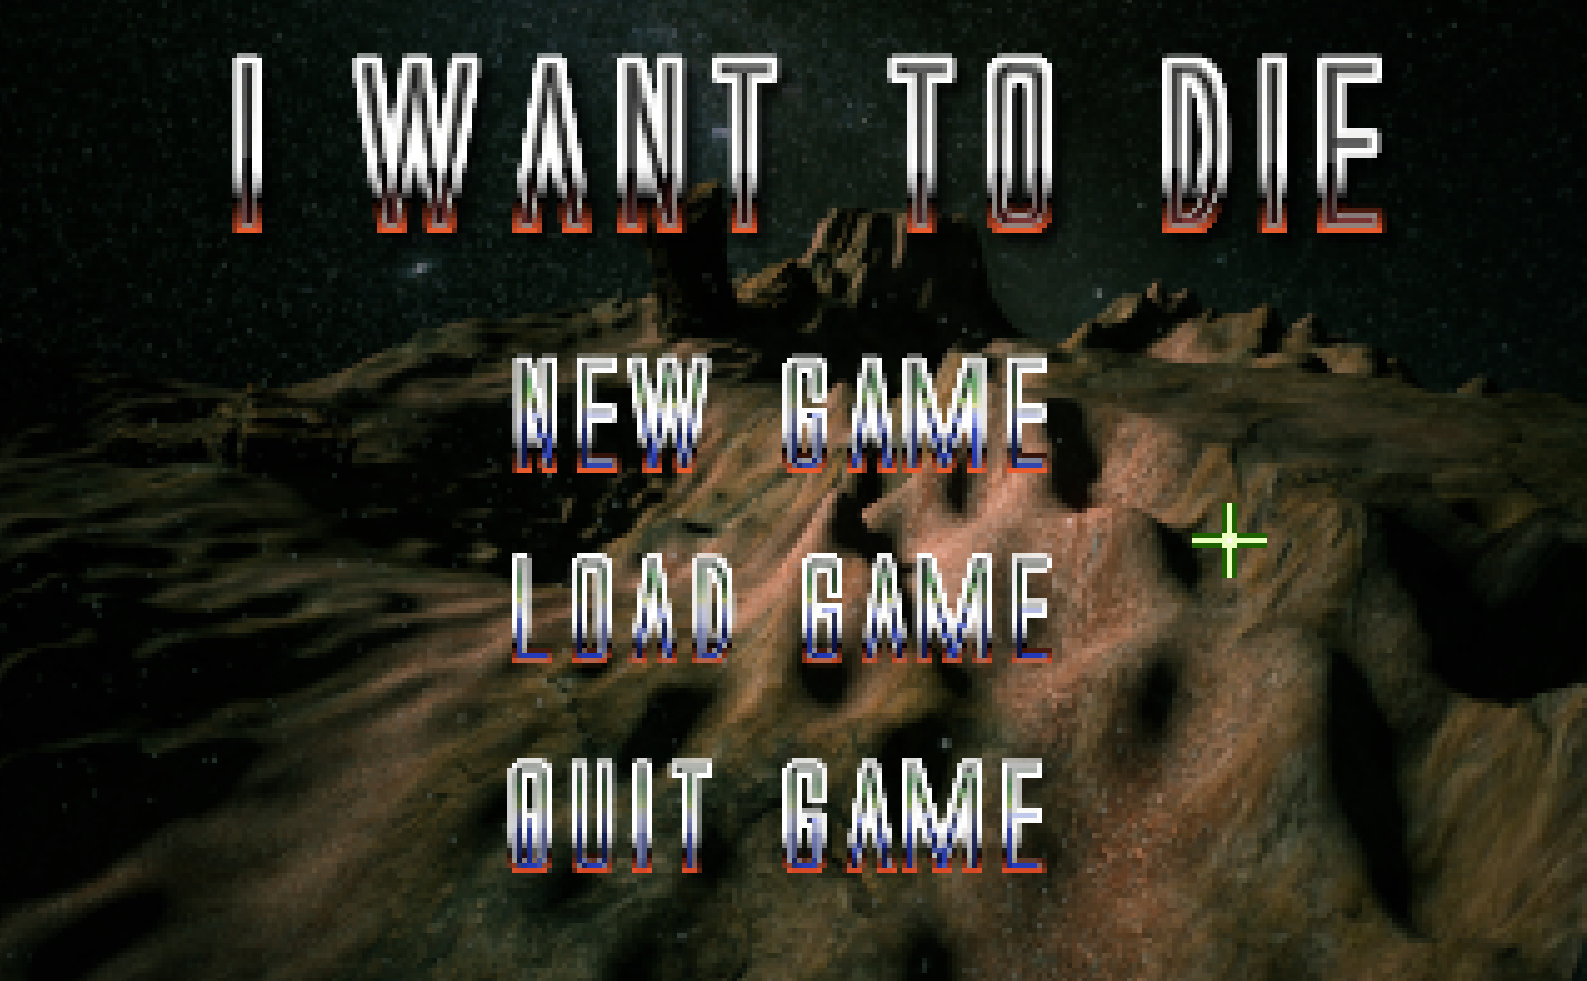 Screenshot 3 of I want to die - Remake width=